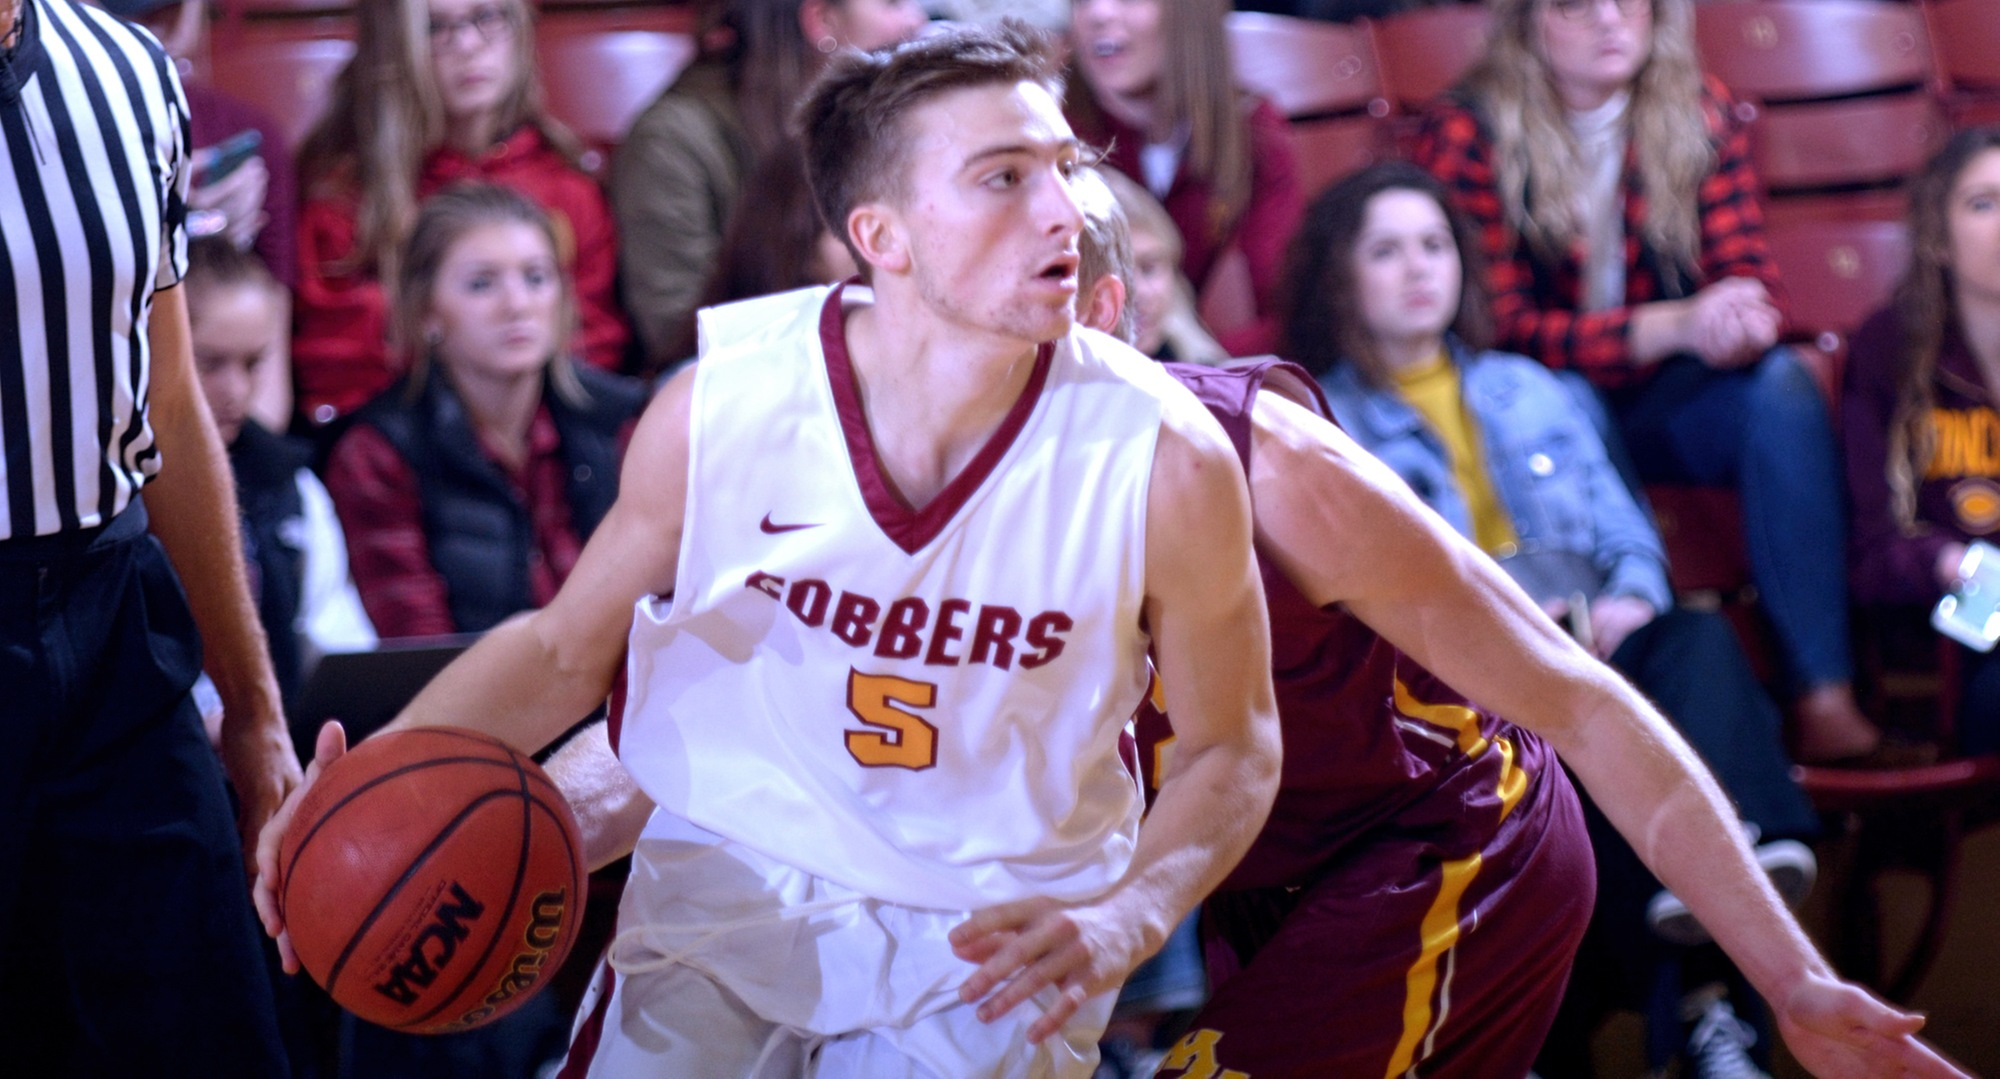 Freshman Bryden Urie scored a career-high 16 points to help Concordia earn its first conference win of the season.